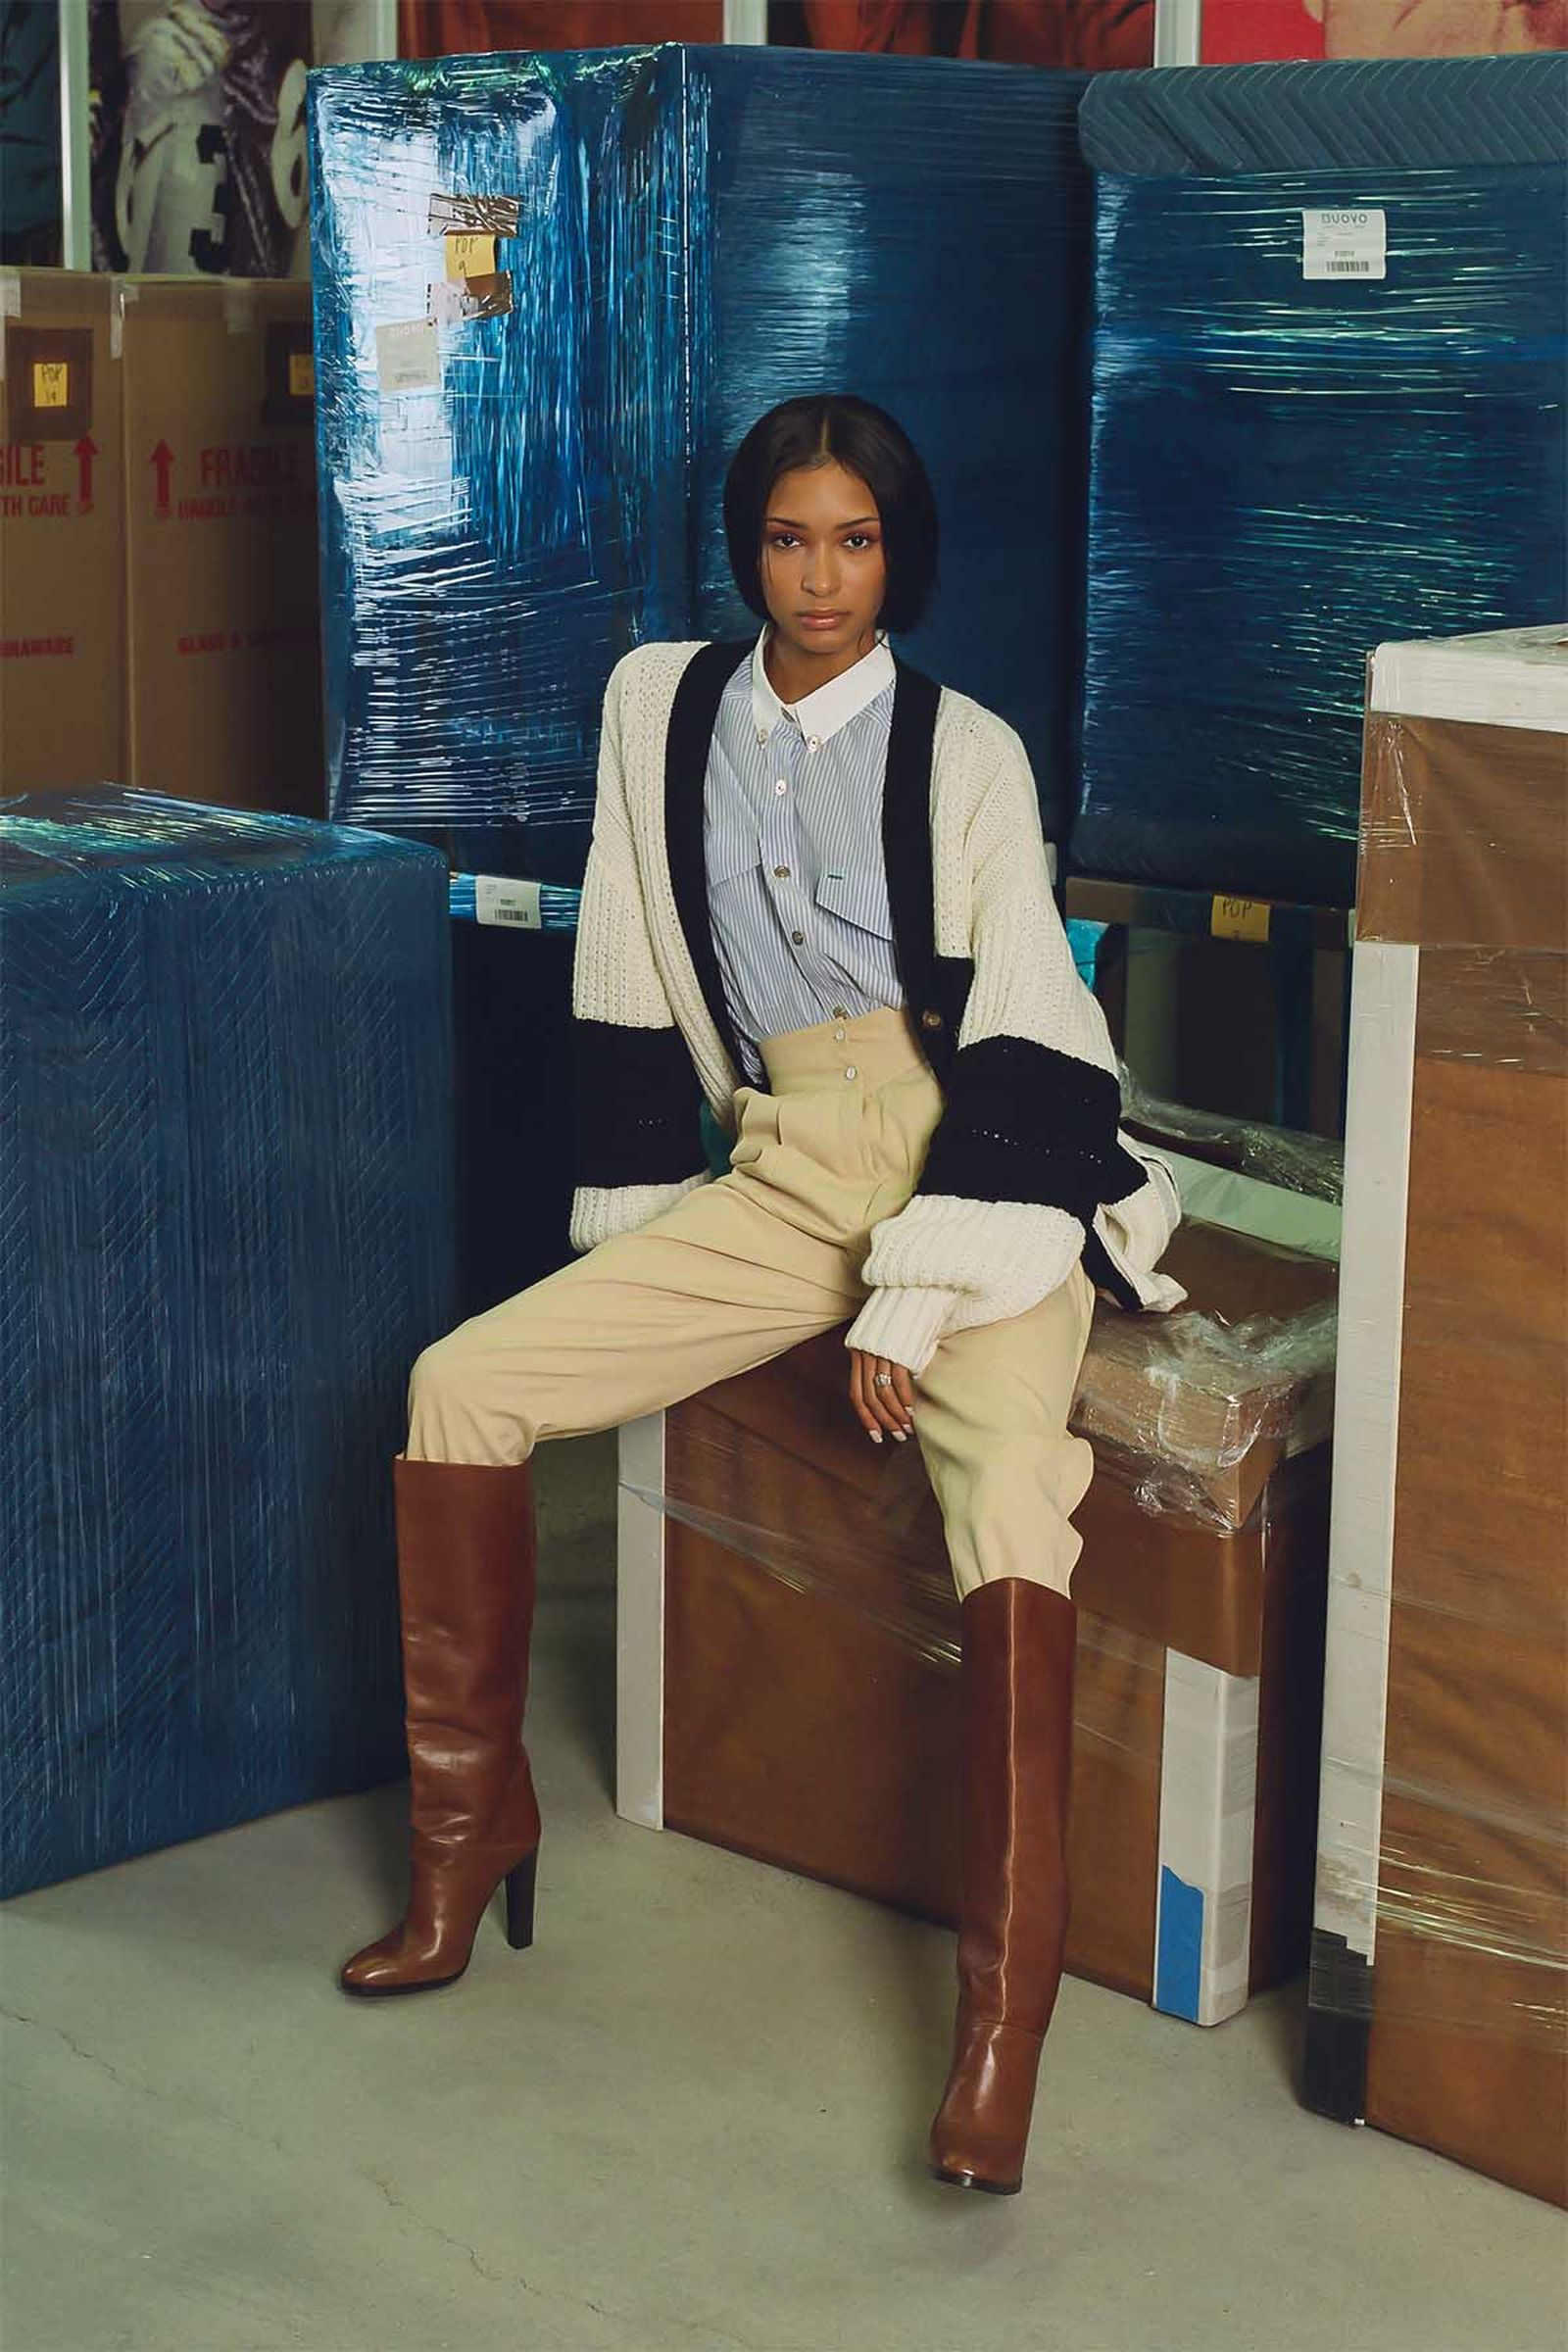 Hilfiger Collection Women's Letterman Cardigan and Heritage Shirt (Fall 2020), Tommy Hilfiger Women's Cropped Wool Pleat Trousers (Fall 1982), Tommy Hilfiger Collection Women's Leather Knee-High Boots (Fall 2009)